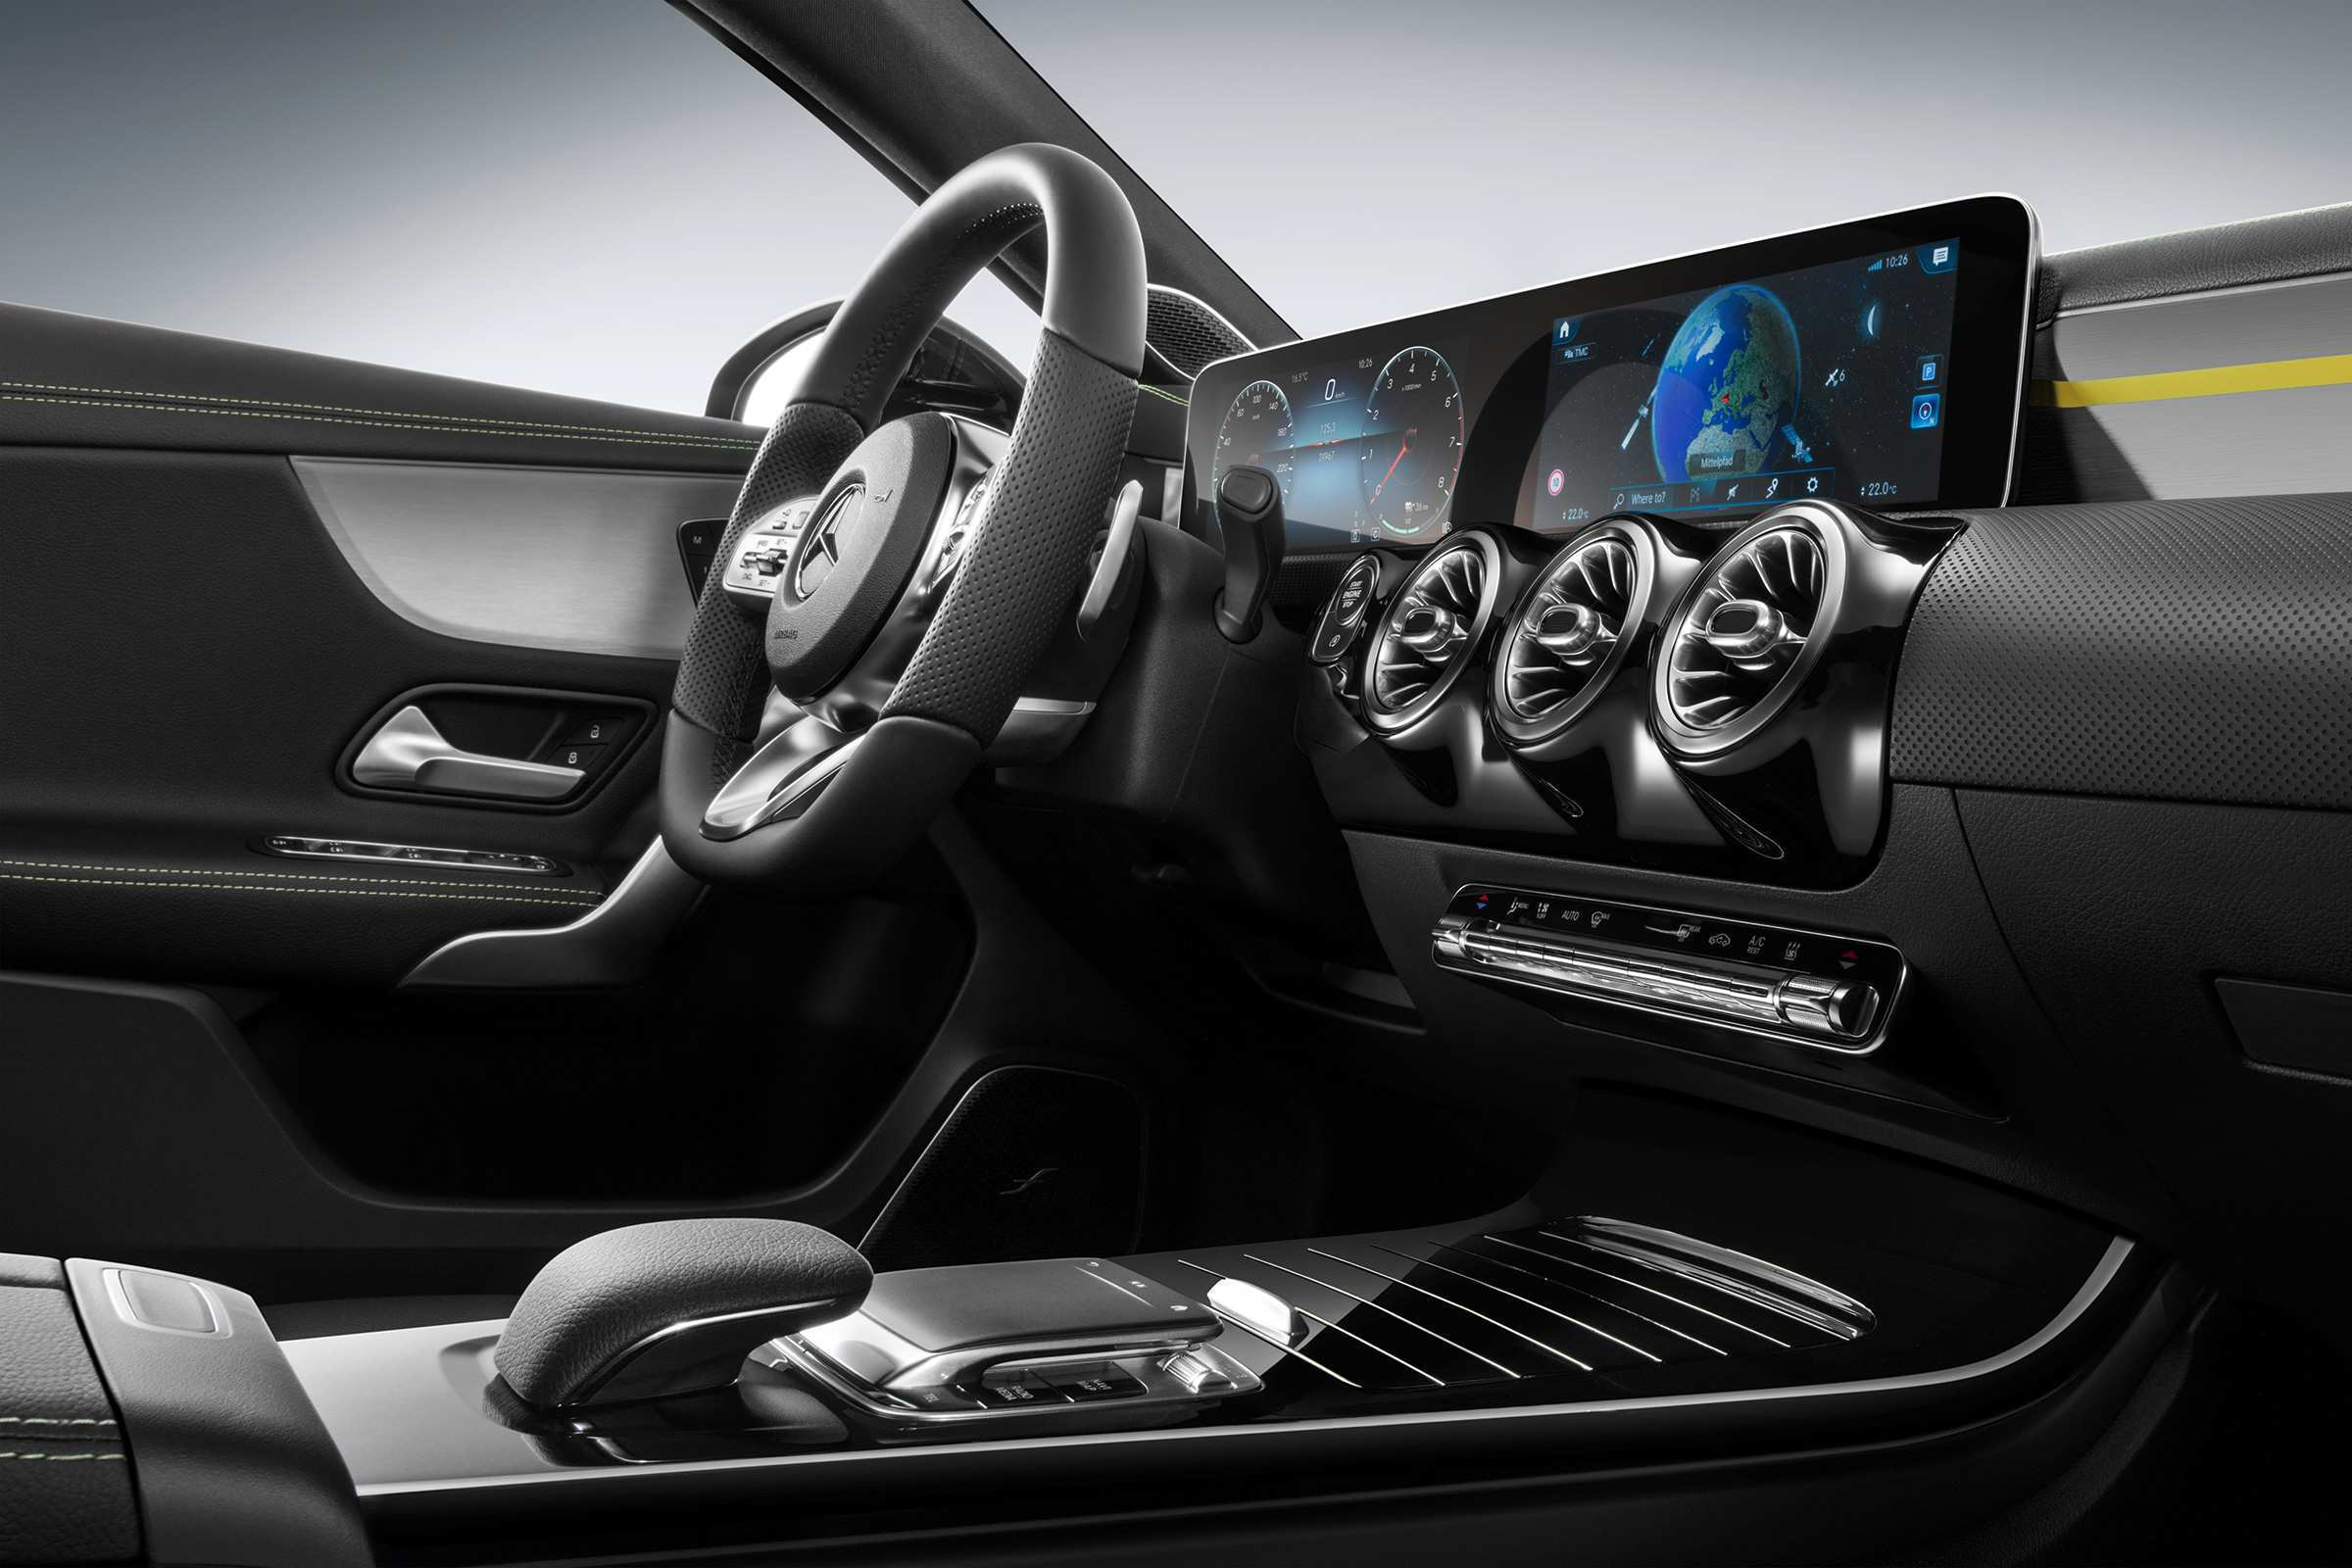 60 Best Mercedes A Class 2019 Interior Price And Release Date